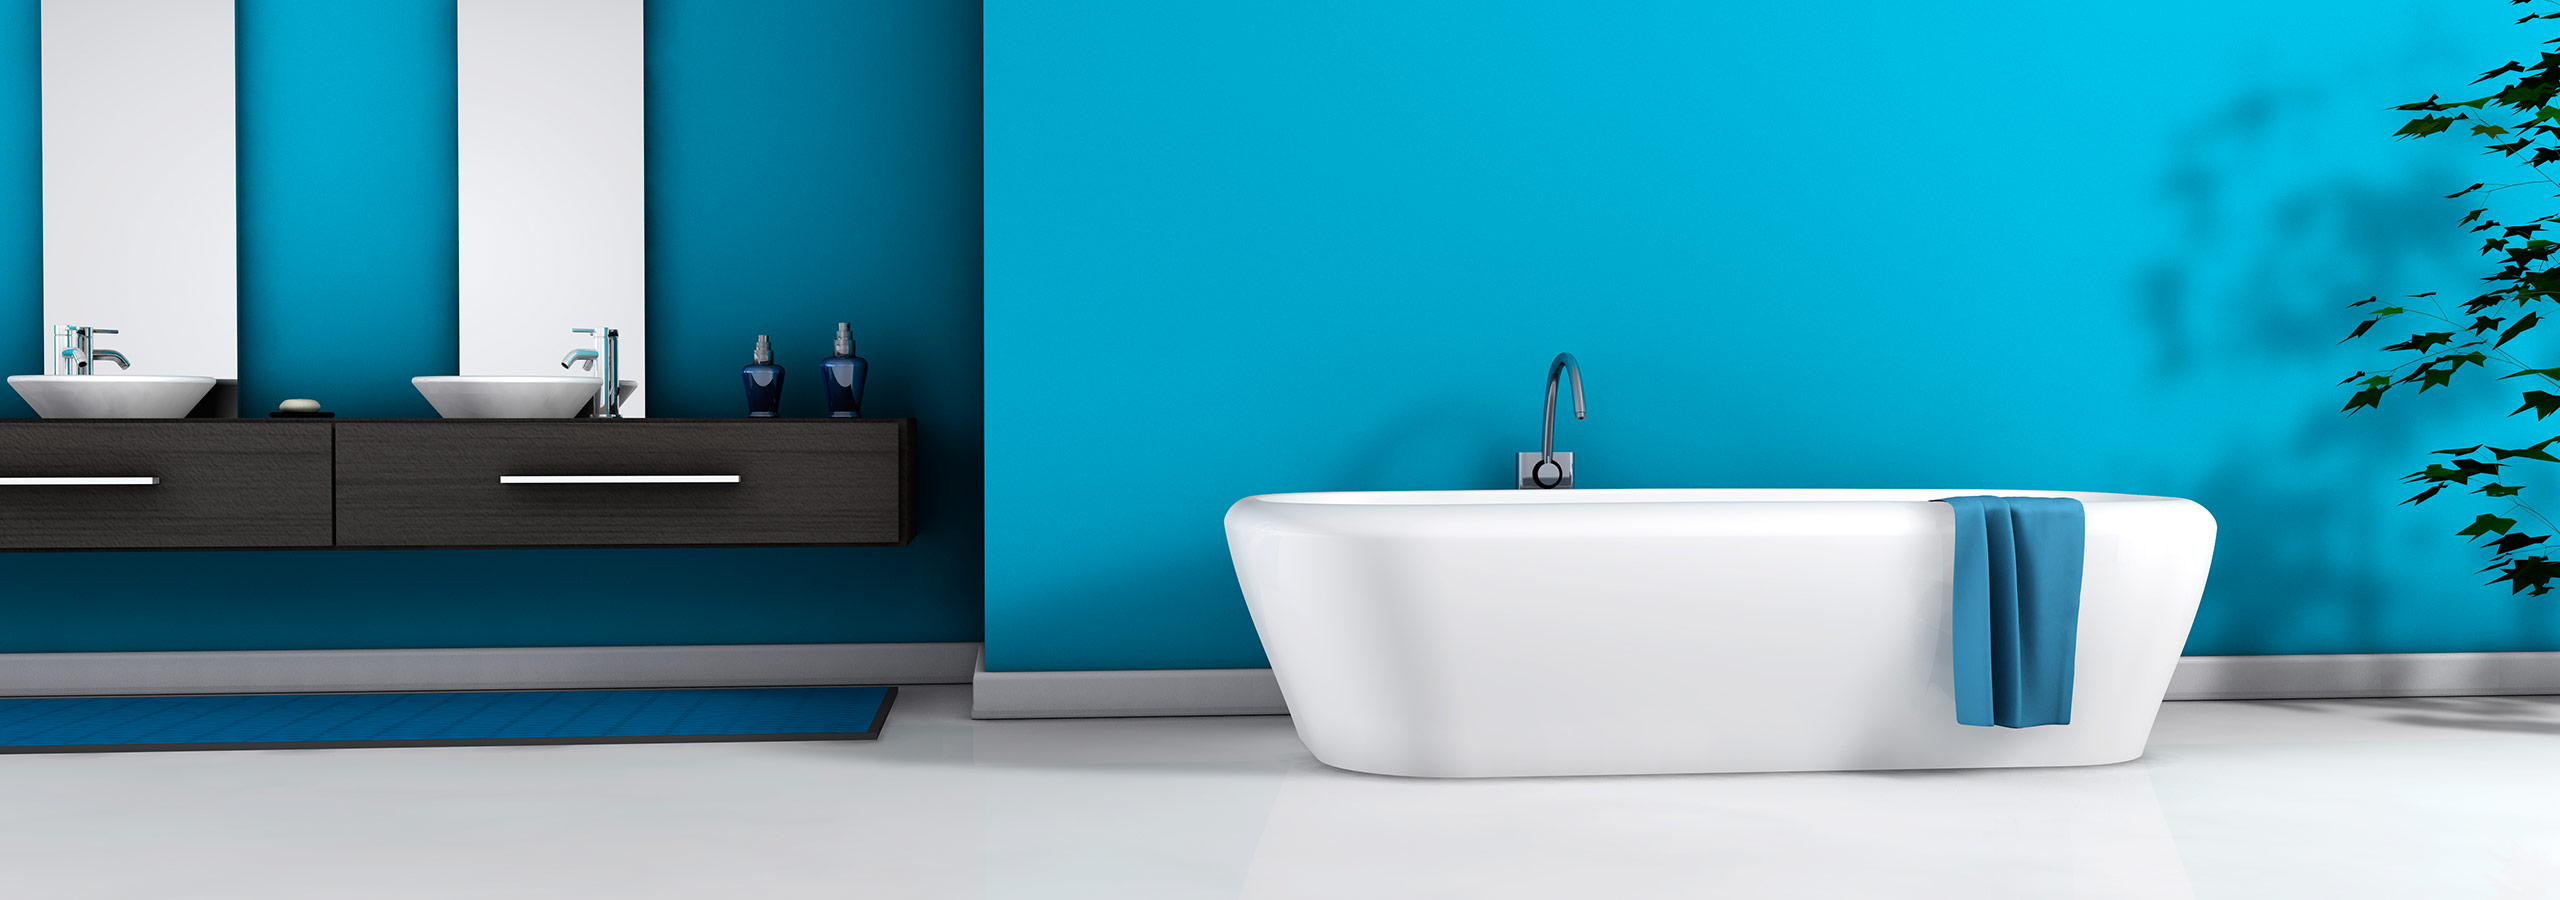 3D Render of a Bathroom with Blue Walls